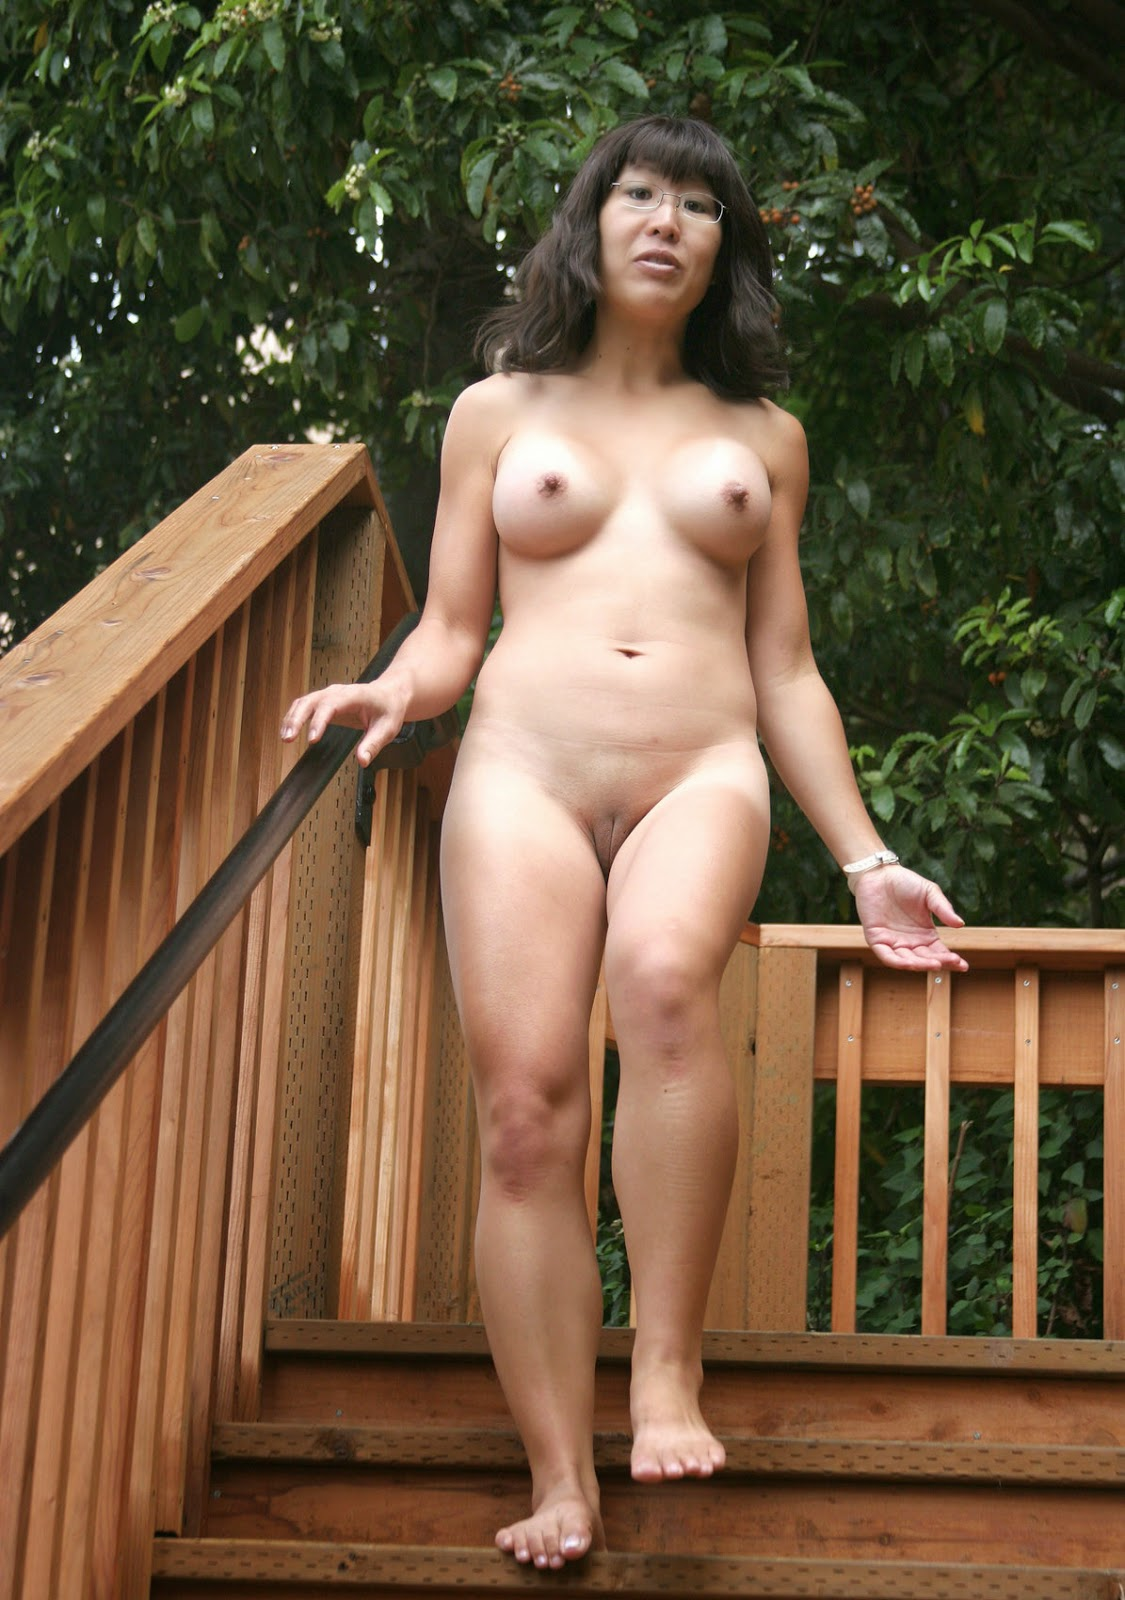 Nice view of mature wife nude